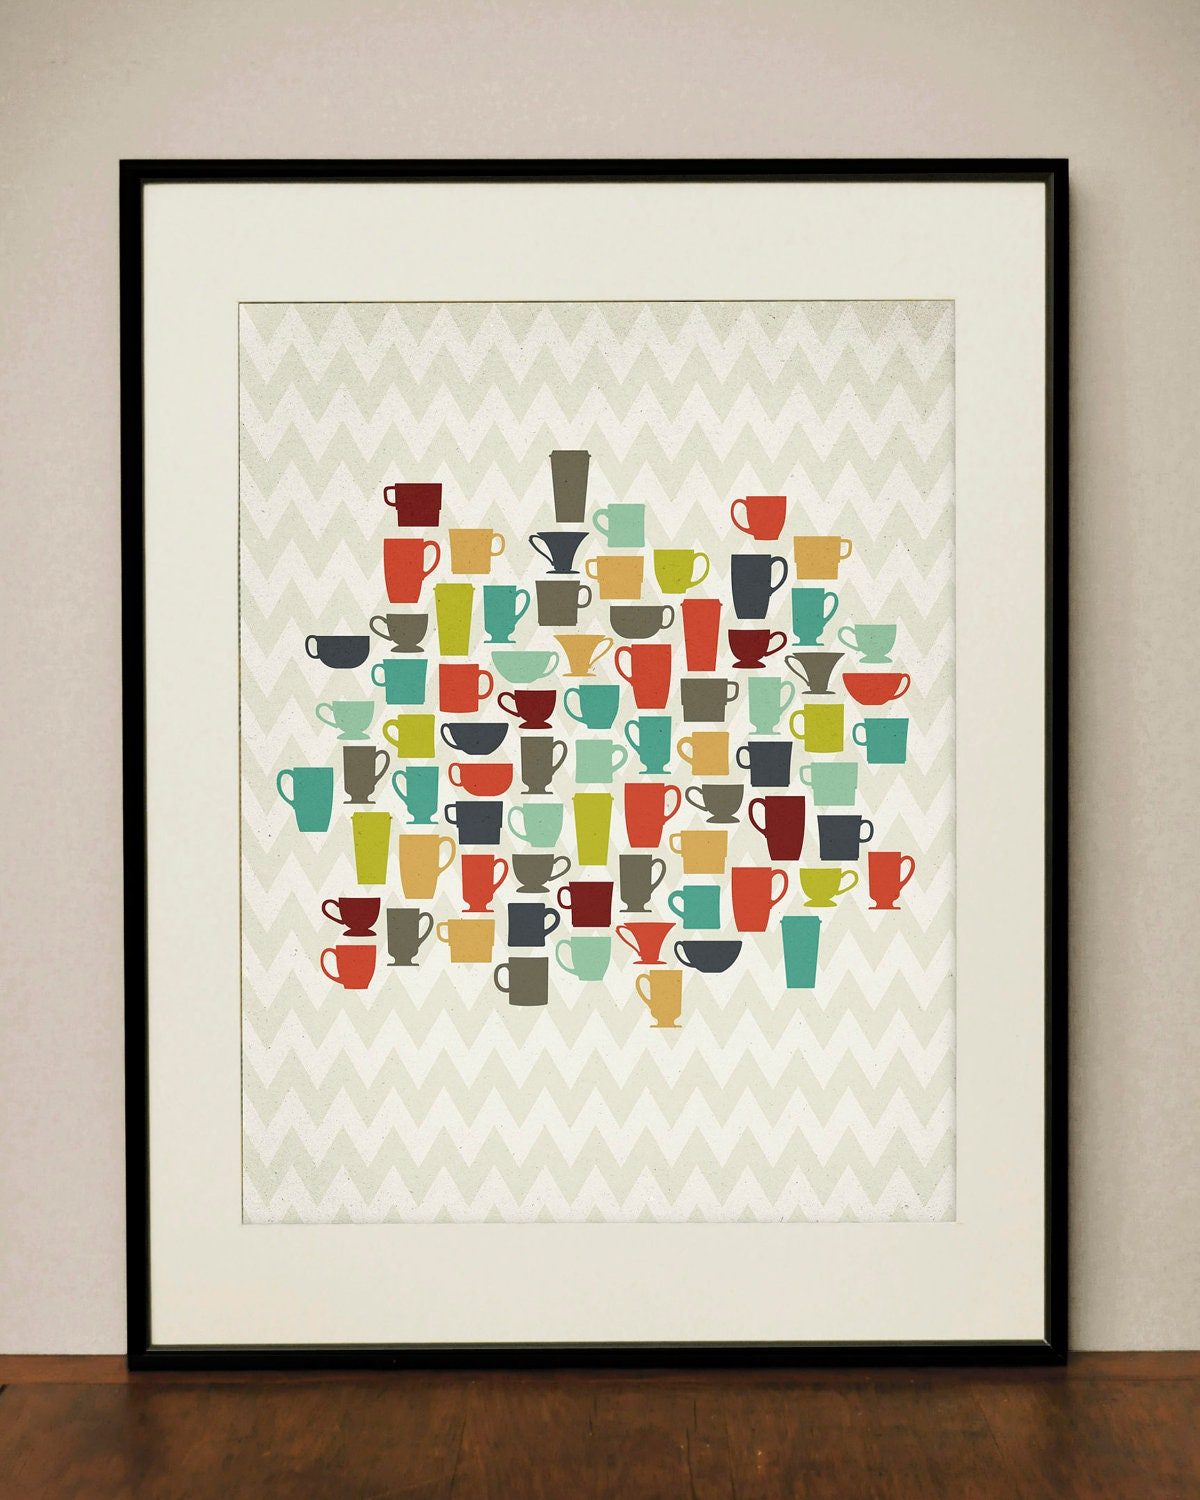 Retro Kitchen Wall Decor: Retro Kitchen Coffee Cups 11x14 Art Print By ProjectType On Etsy